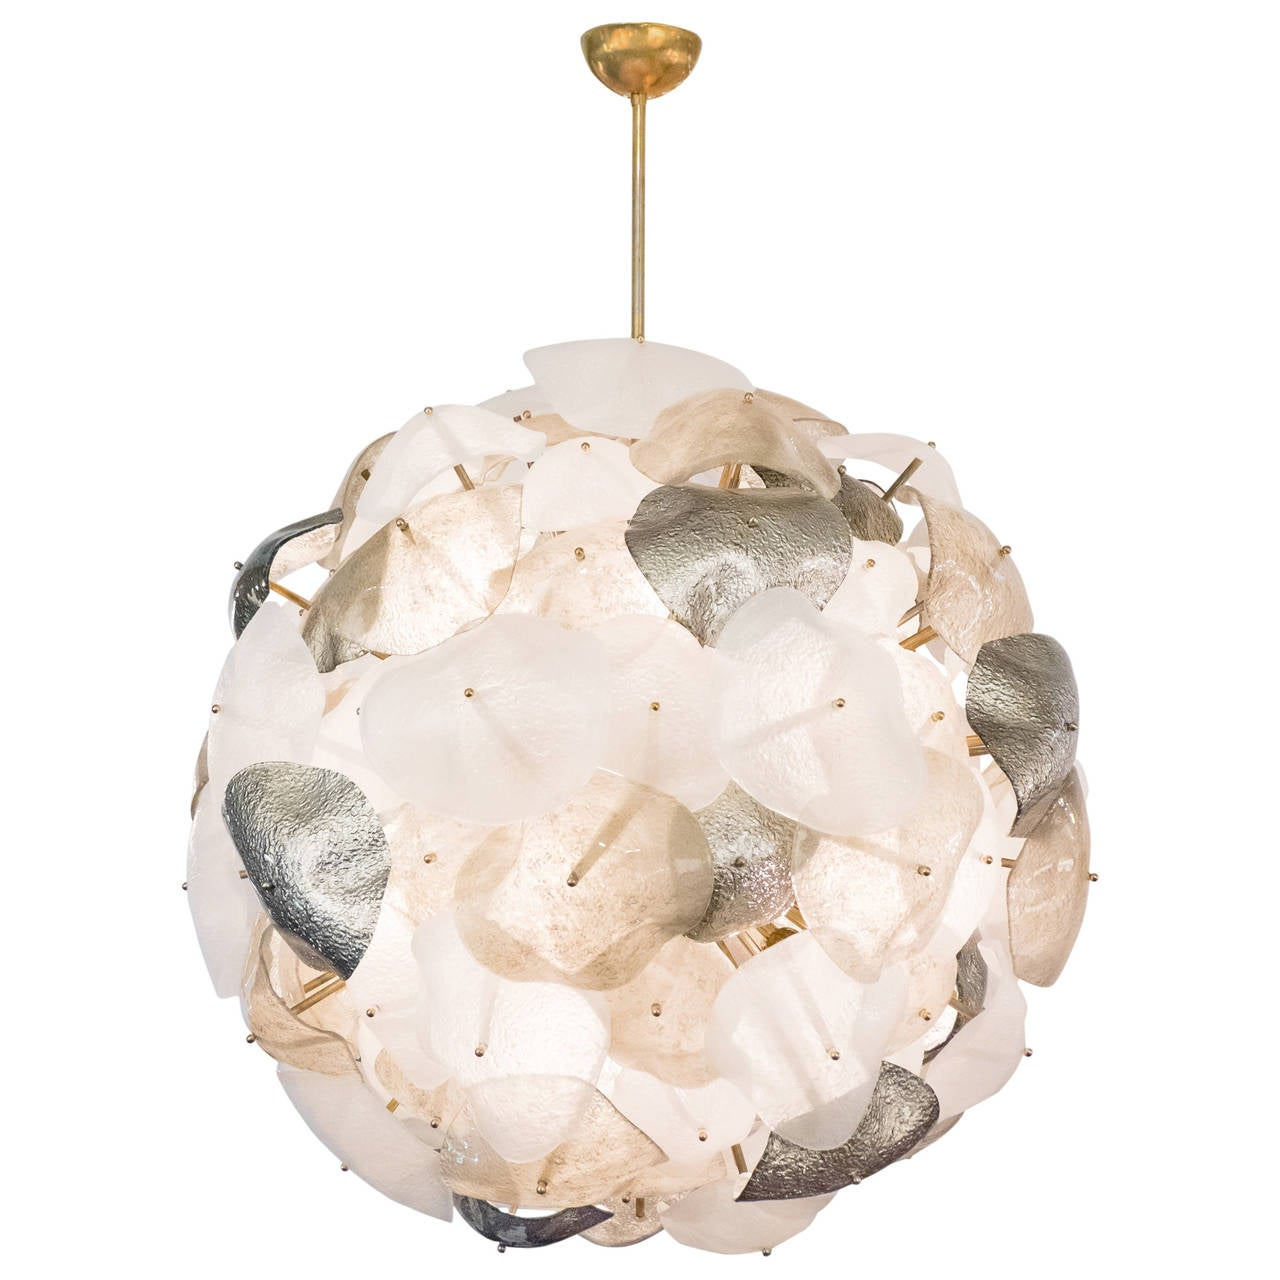 today globe garden home metal cherrywood product light black strap shipping porch free robinson den chandelier lighting overstock